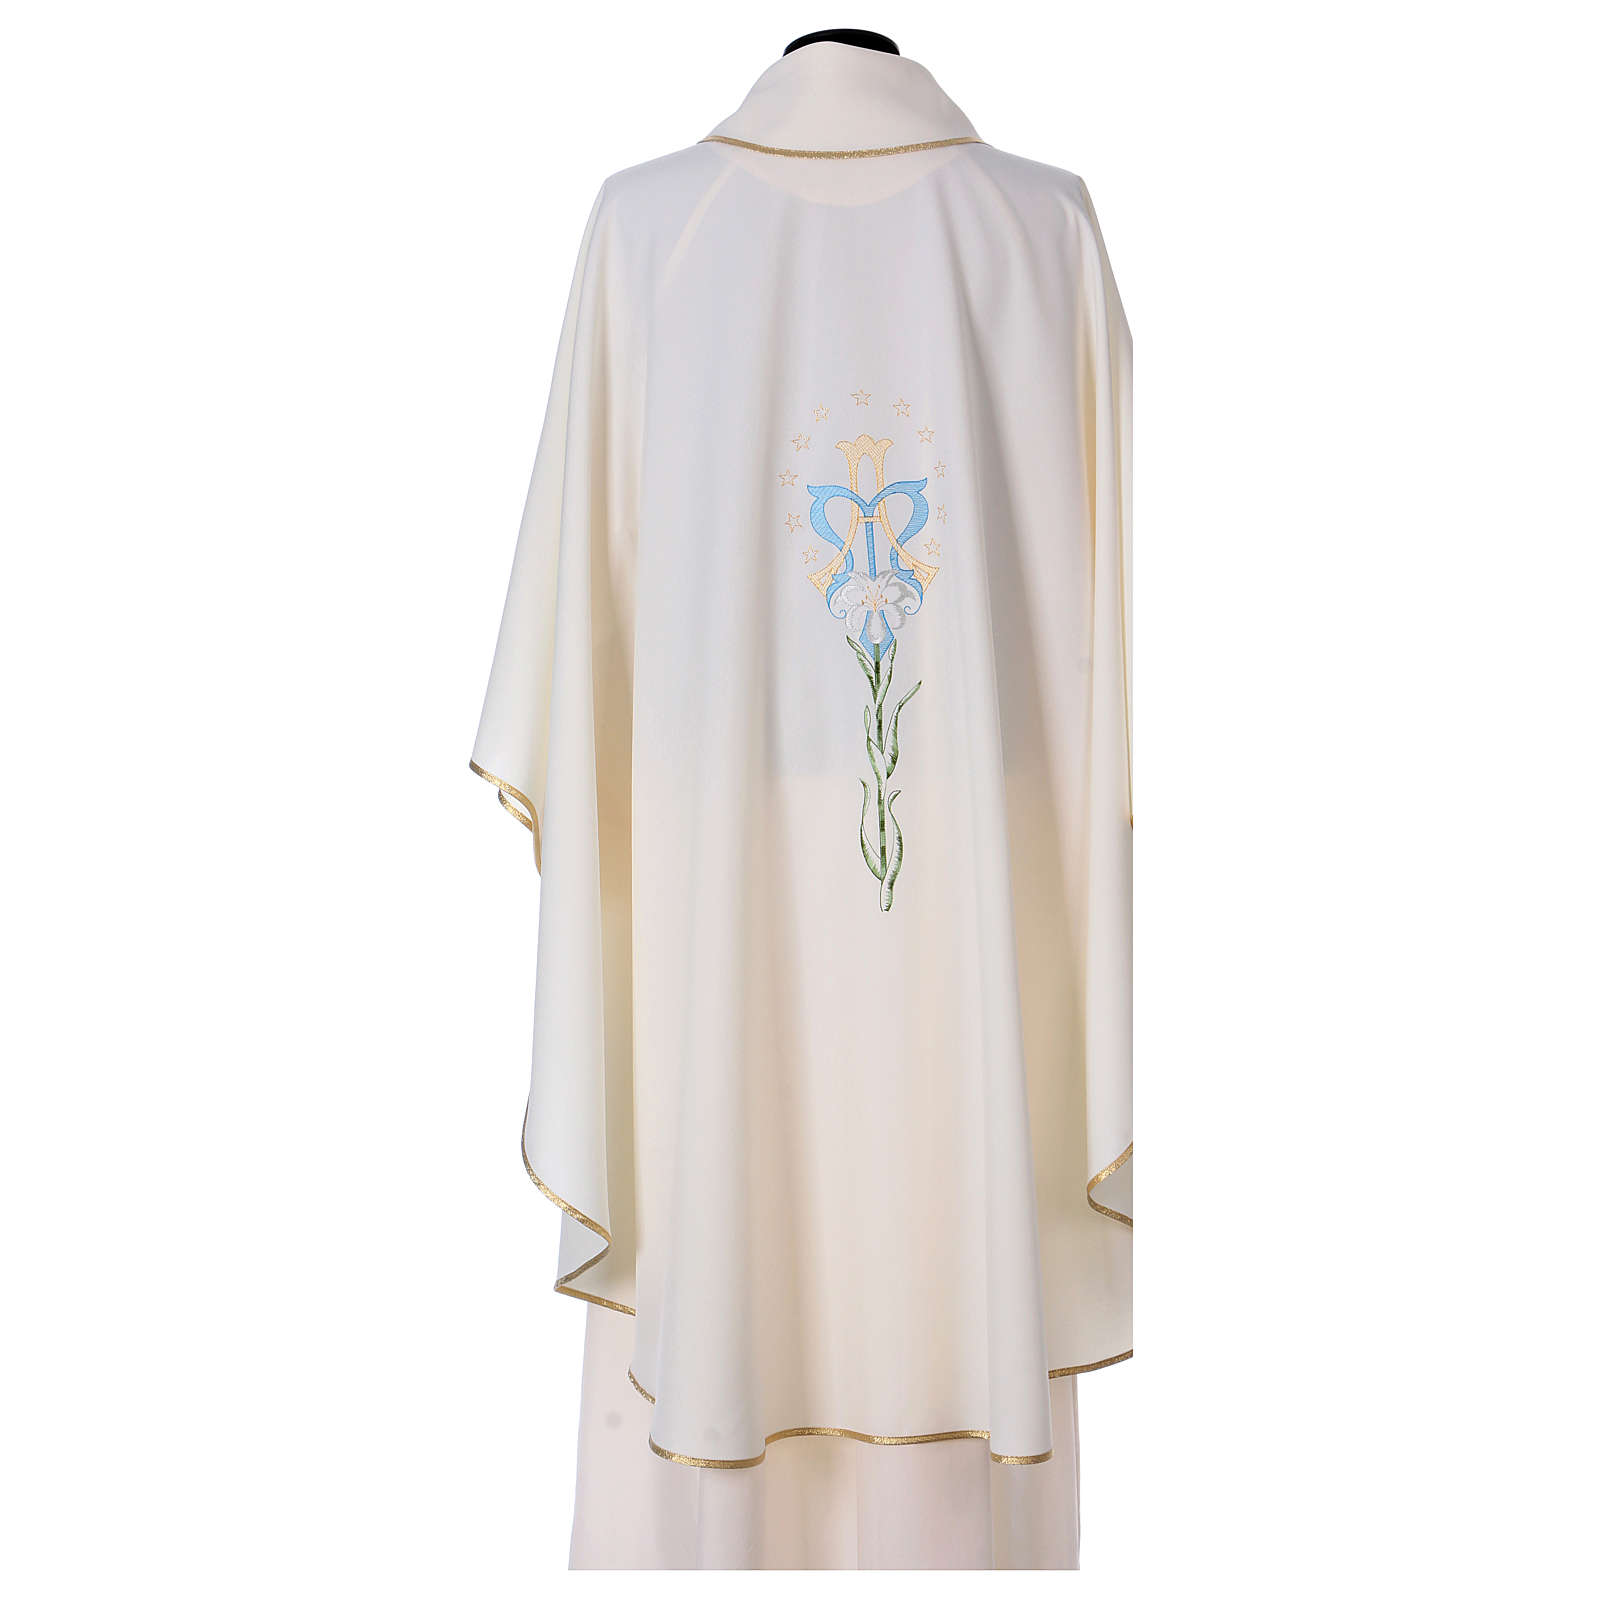 Semi Gothic Chasuble with lily, stars and initials of Mary 4